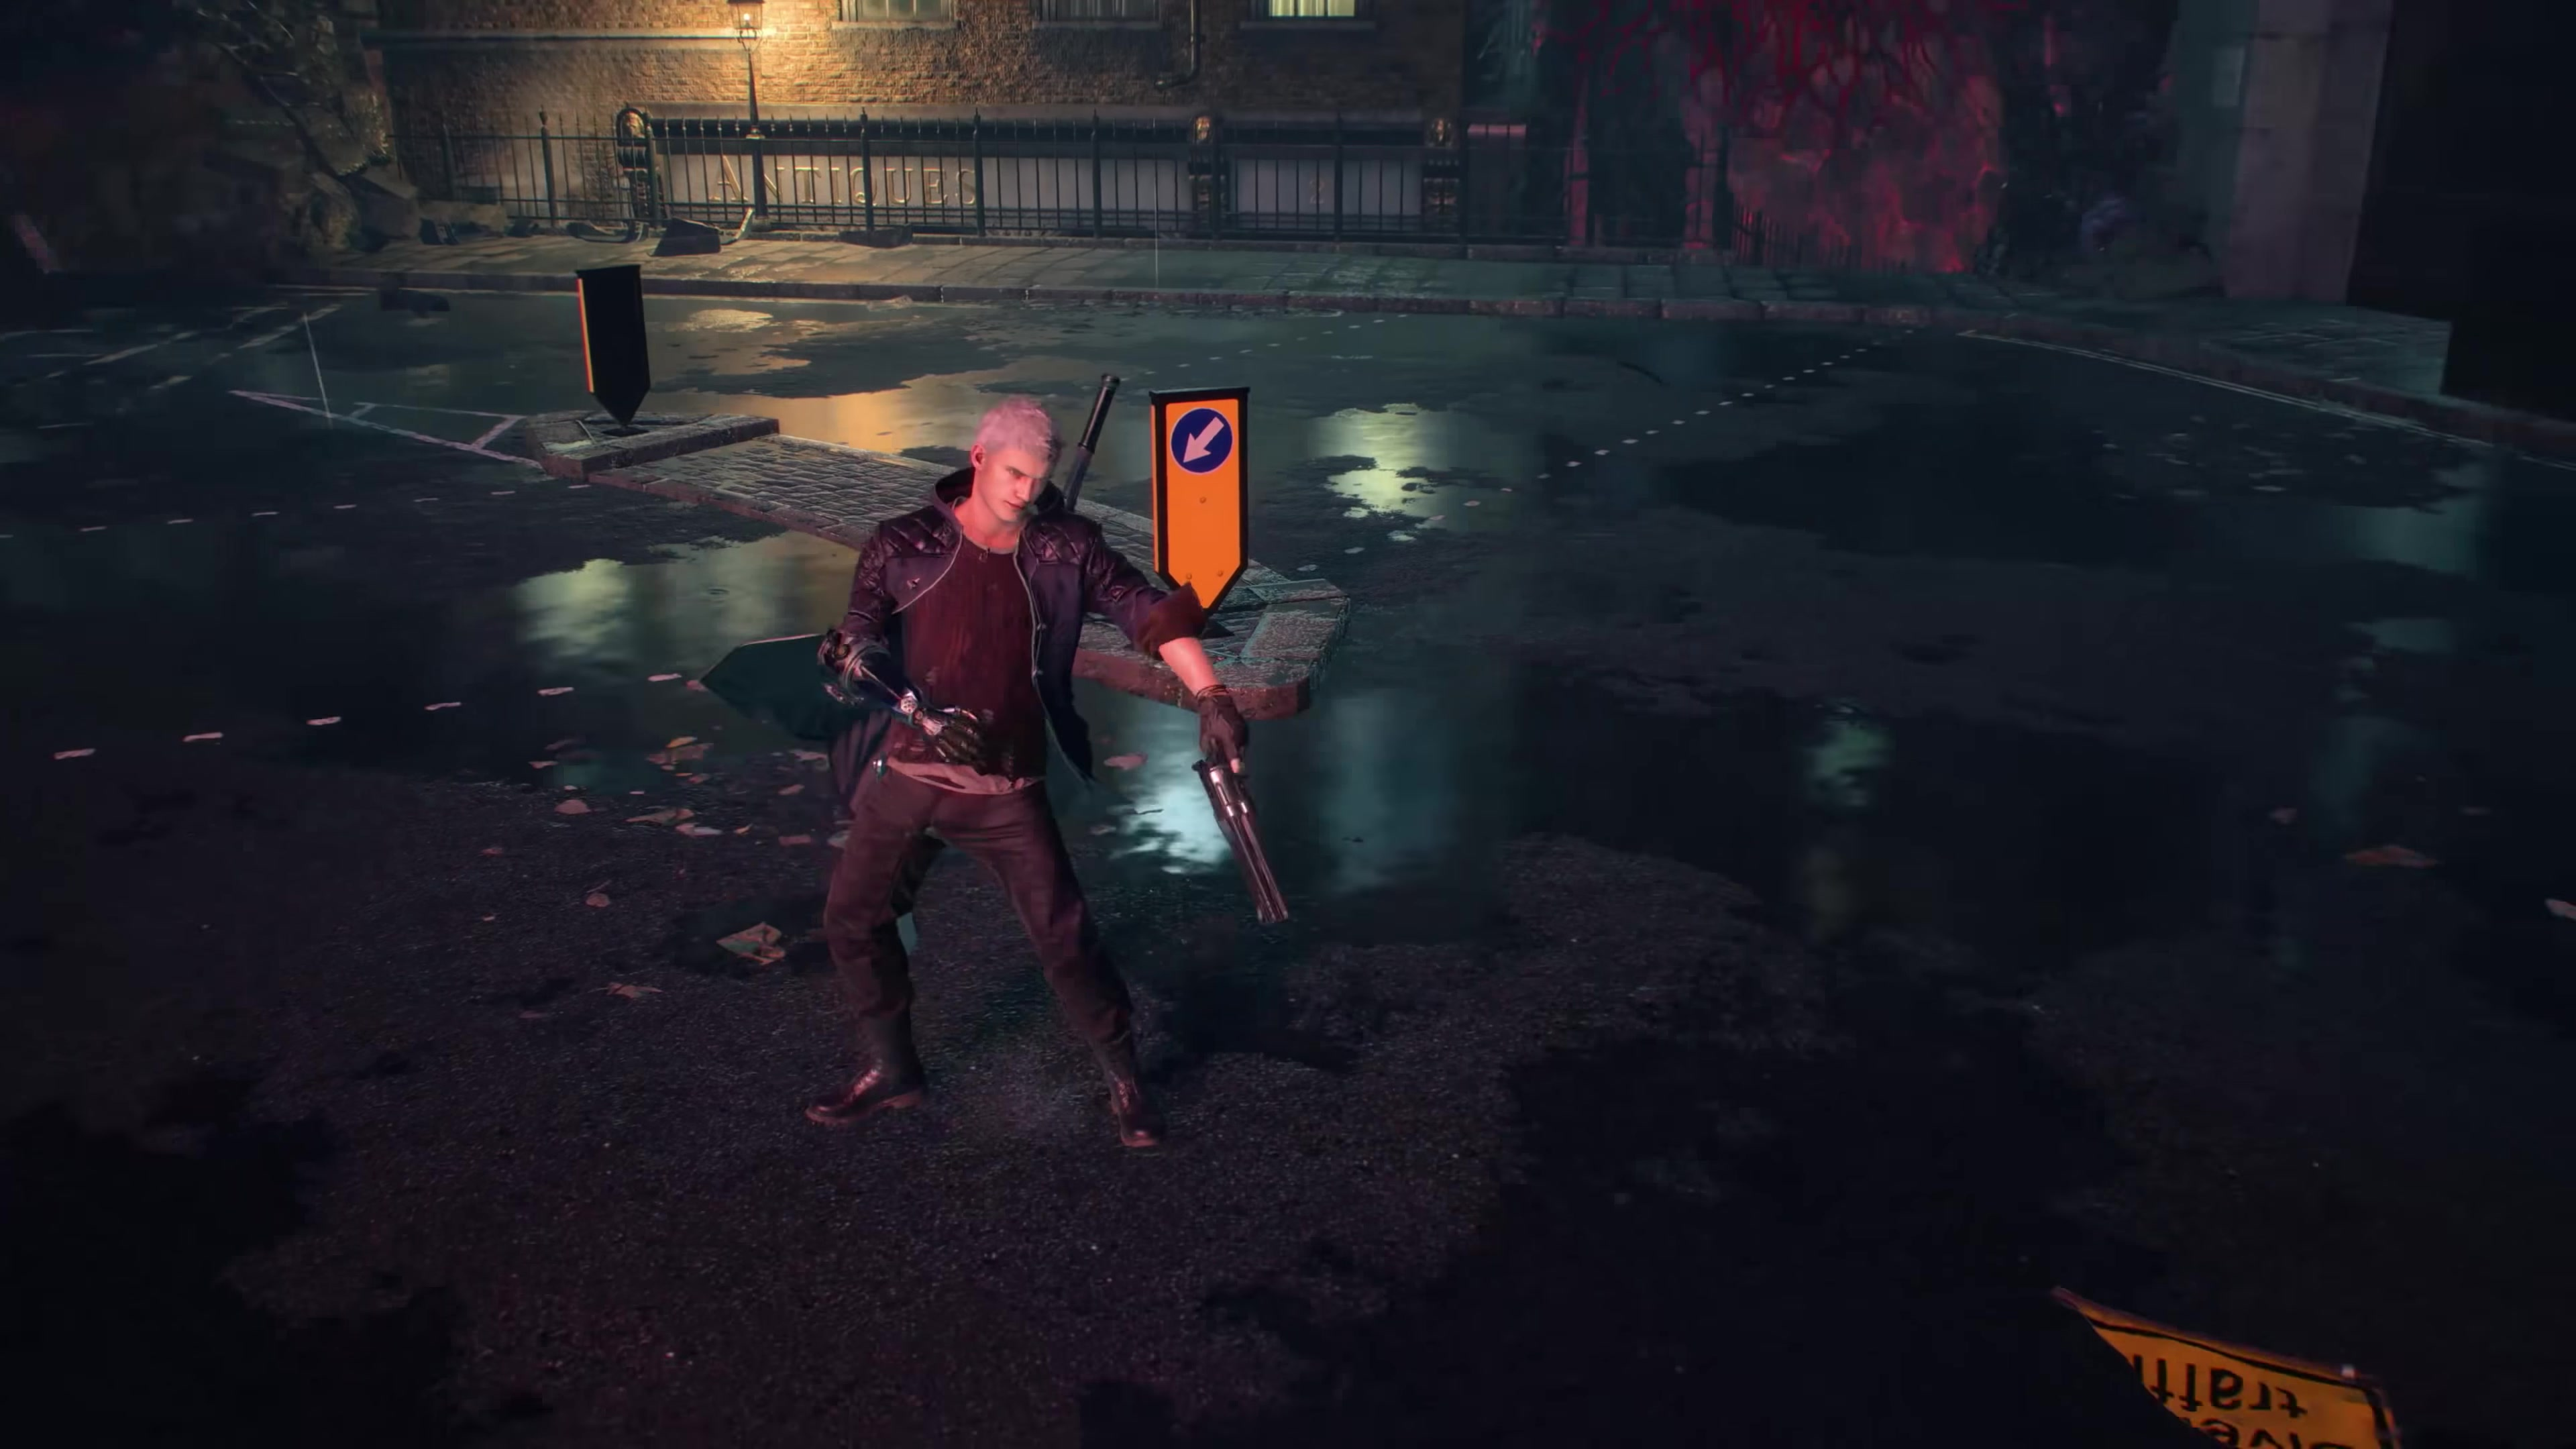 Devil May Cry 5 077.jpg - Devil May Cry 5